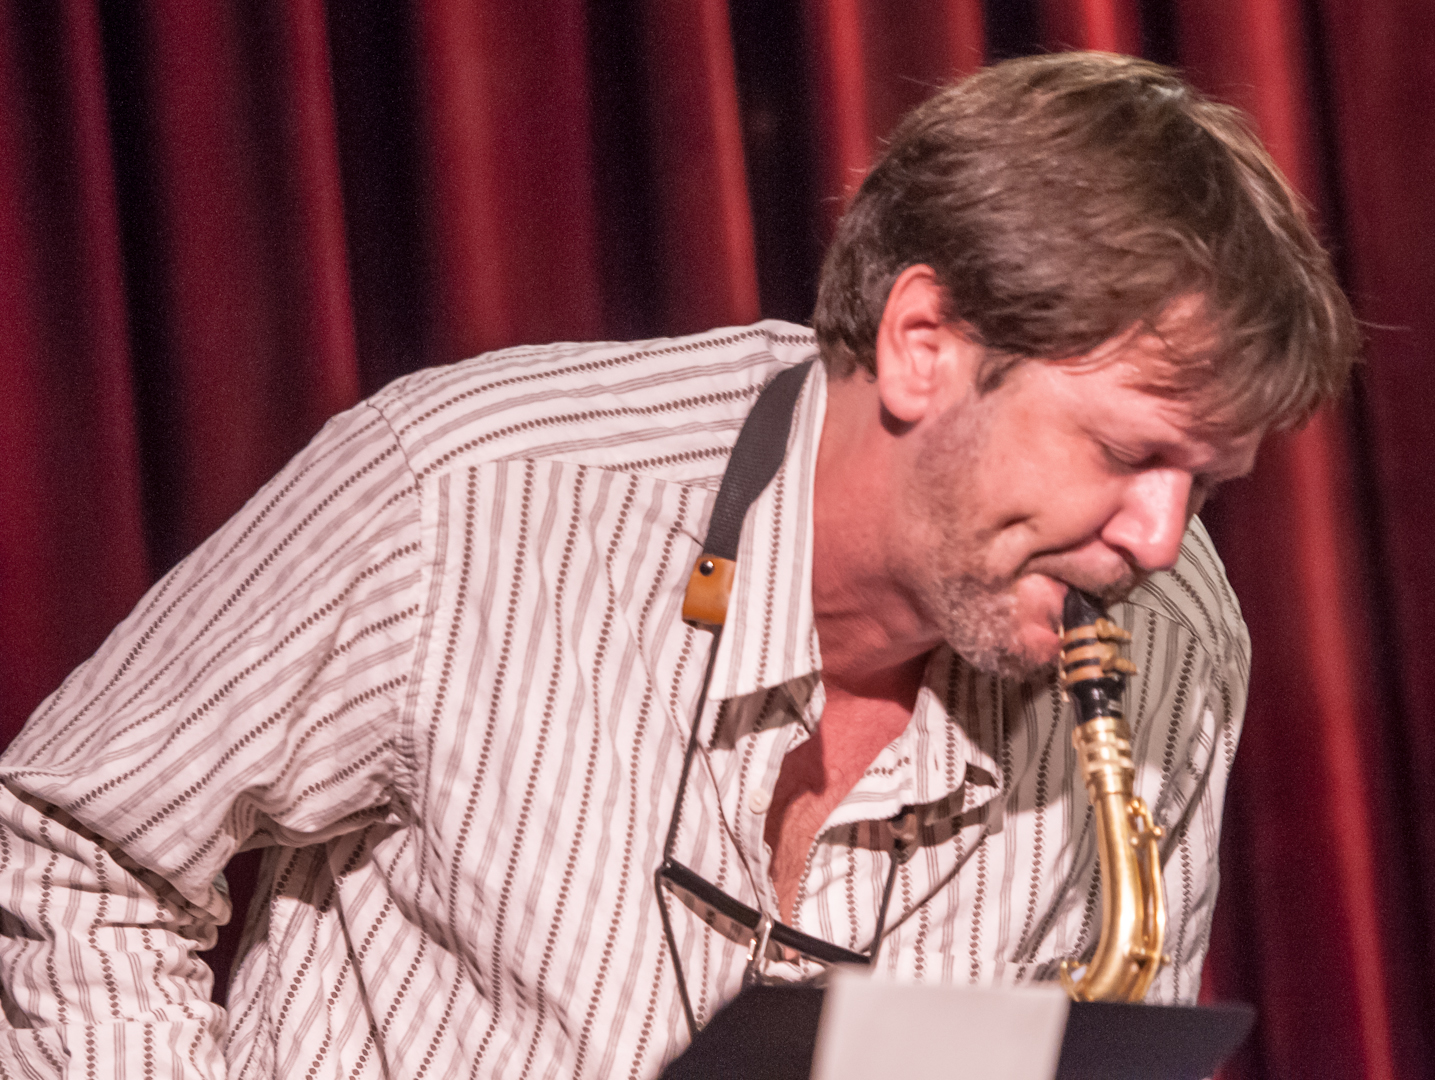 Jim Hobbs with the Taylor Ho Bynum Septet at the Jazz Gallery